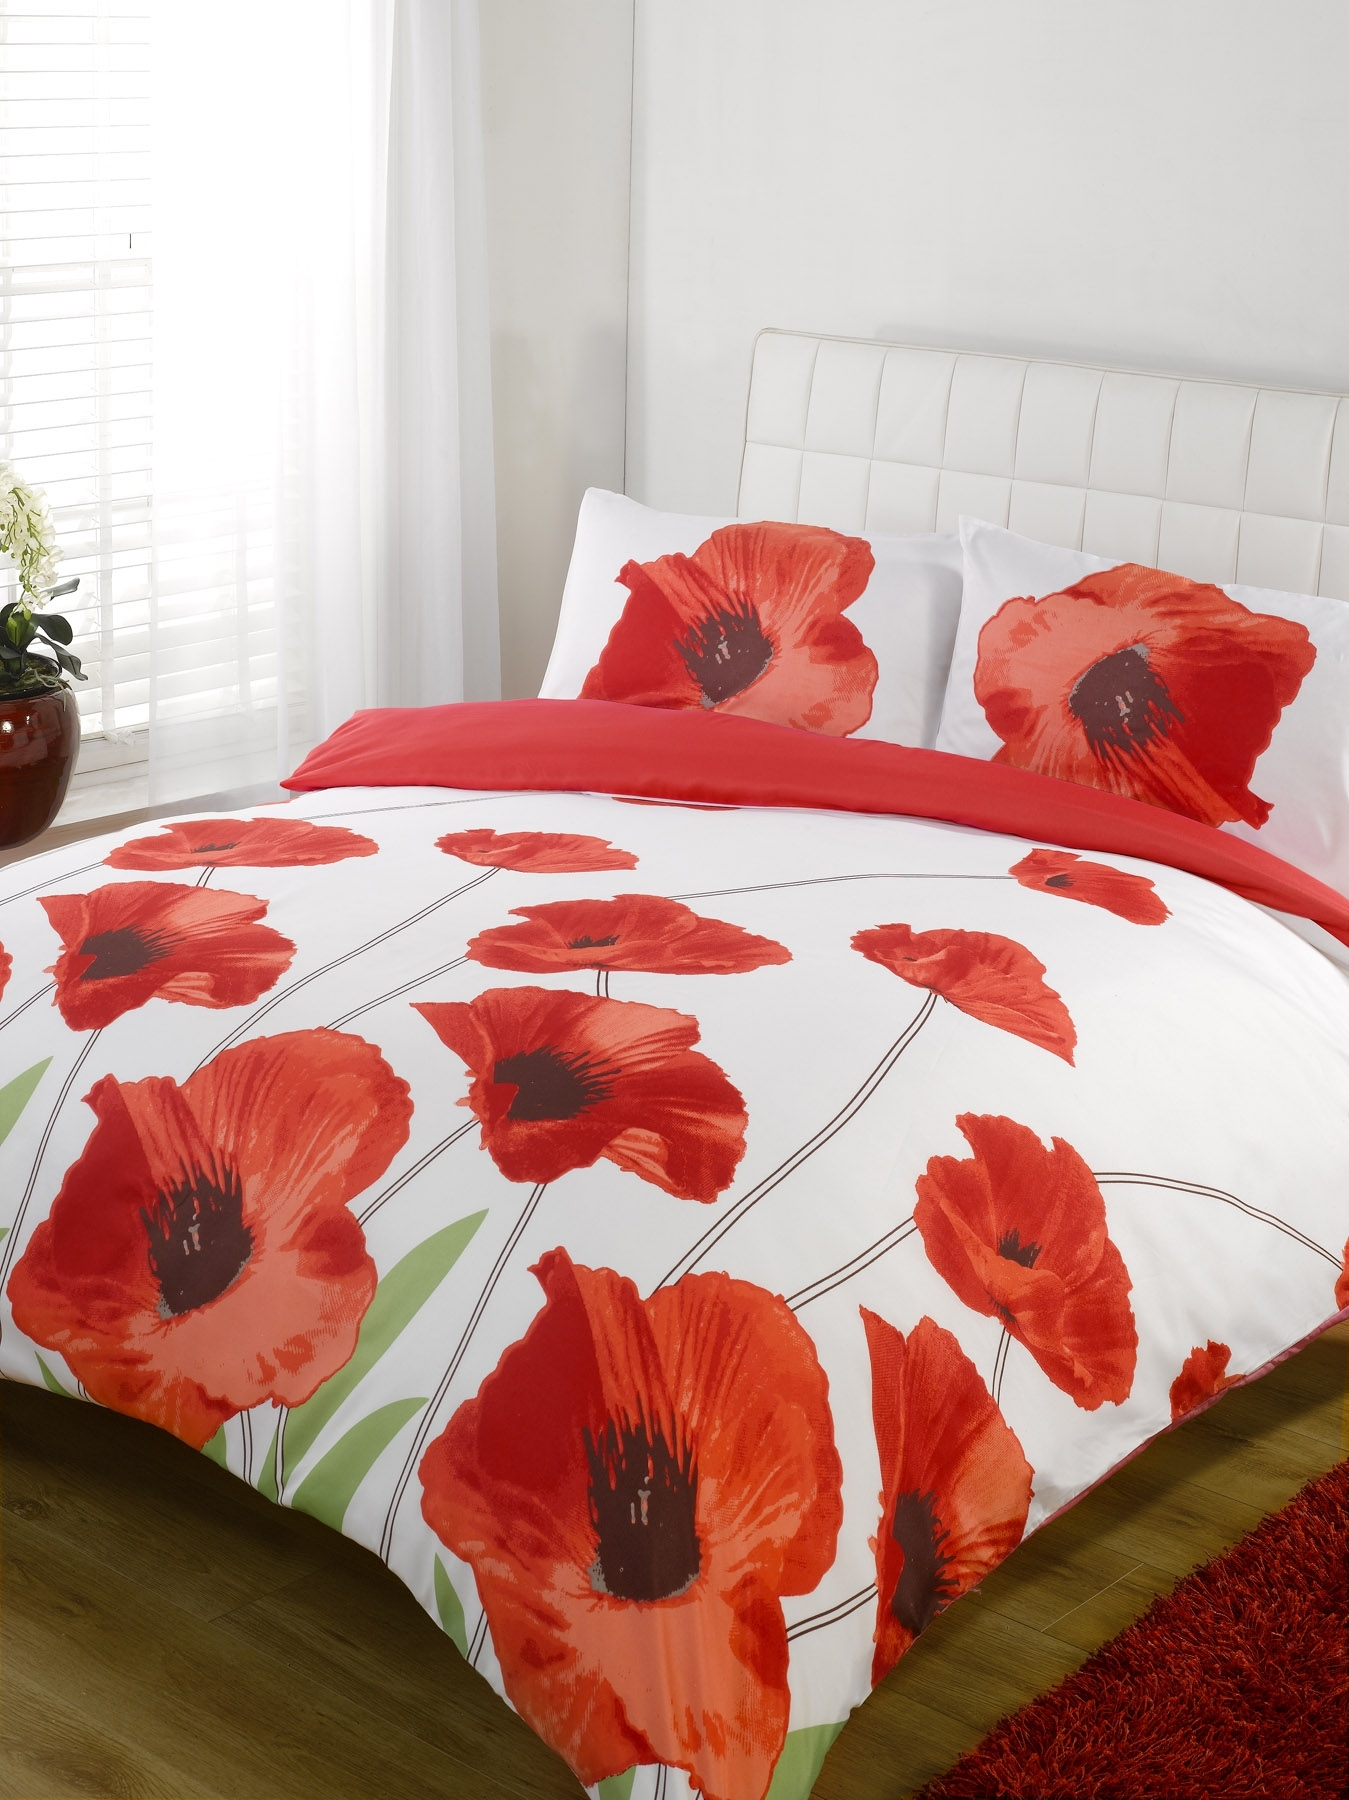 White. Pattern. see all. Number of Items in Set. see all. Custom Bundle. see all. Style. see all. Guaranteed Delivery. see all. No Preference. 1 day shipping. 2 day shipping. 3 day shipping. 4 day shipping. 1pc Duvet Quilt Cover Bedding Set Single Double Queen King Size Comforter Set .